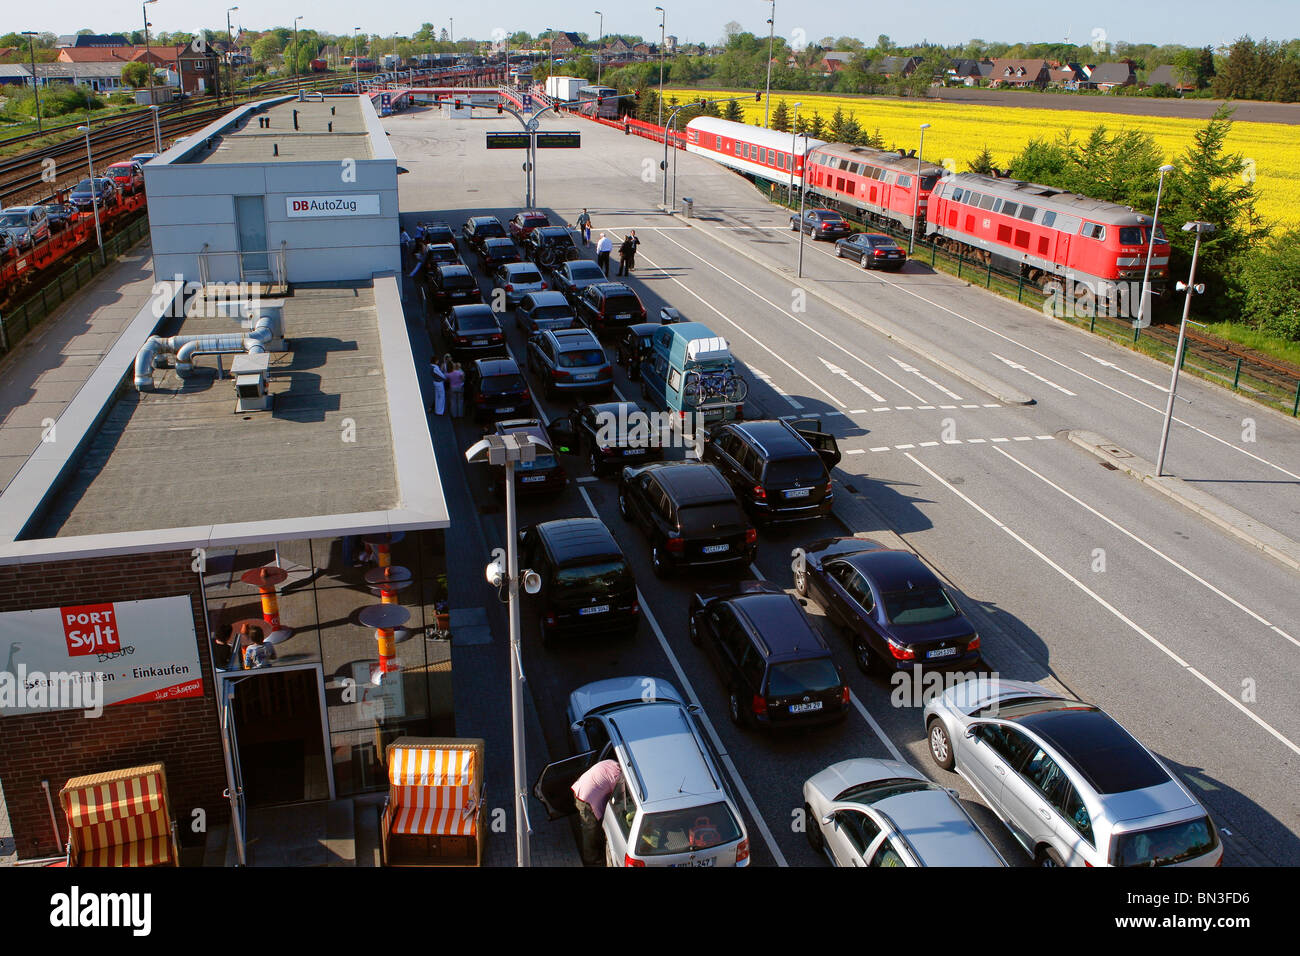 SyltShuttle, car terminal Niebuell, Schleswig-Holstein, Germany - Stock Image